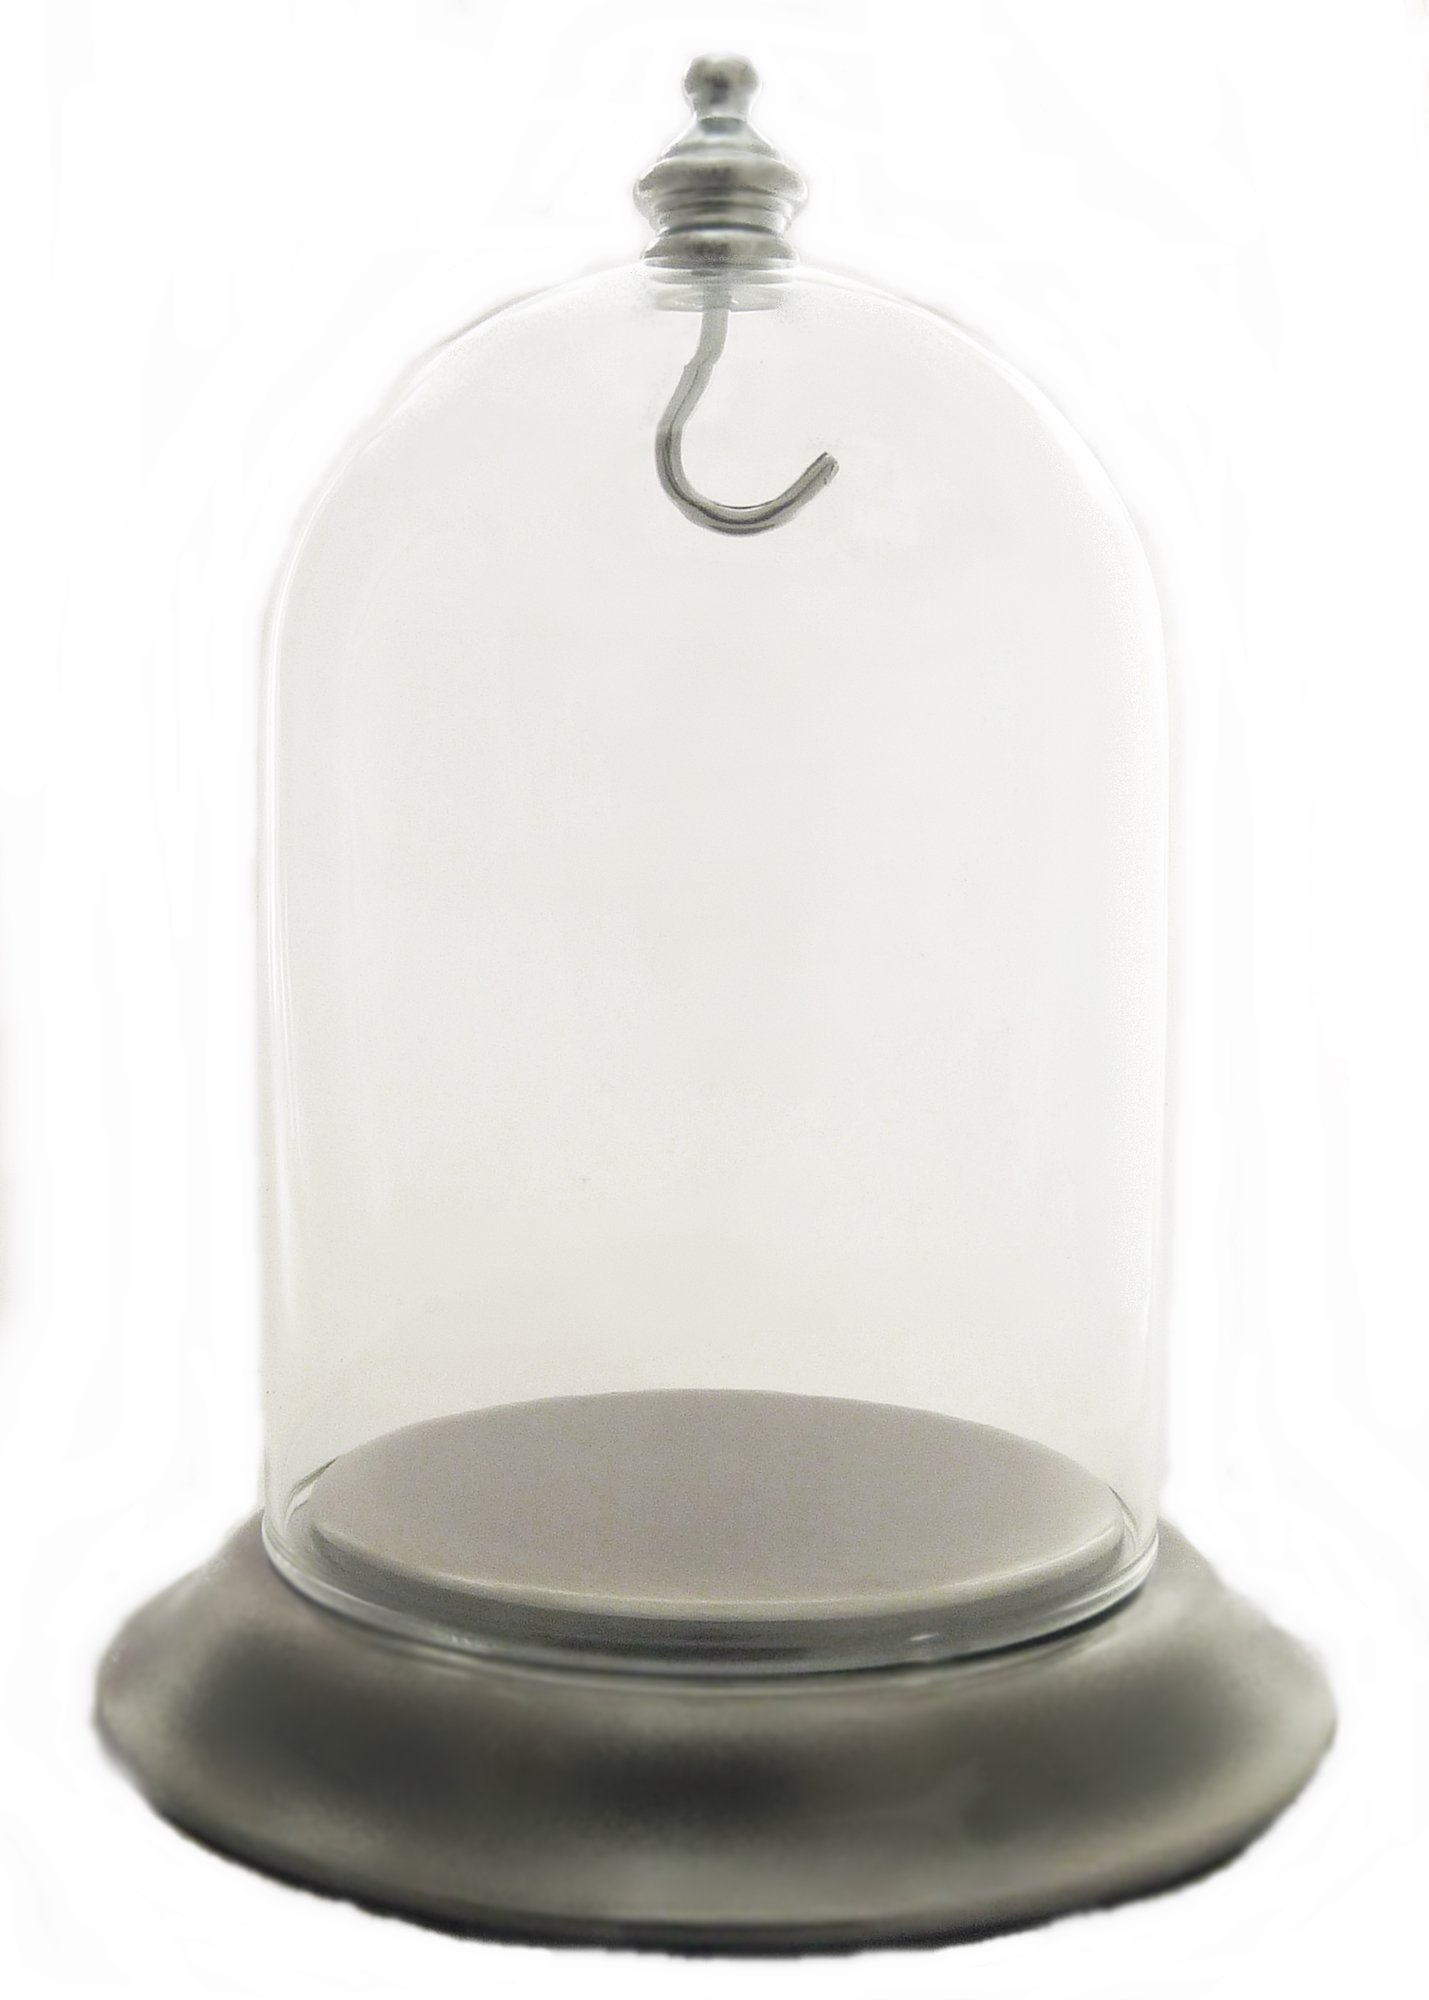 3''x4'' Pocket Watch Glass Display Dome Cloche with Satin Silver Chrome Base with Hook